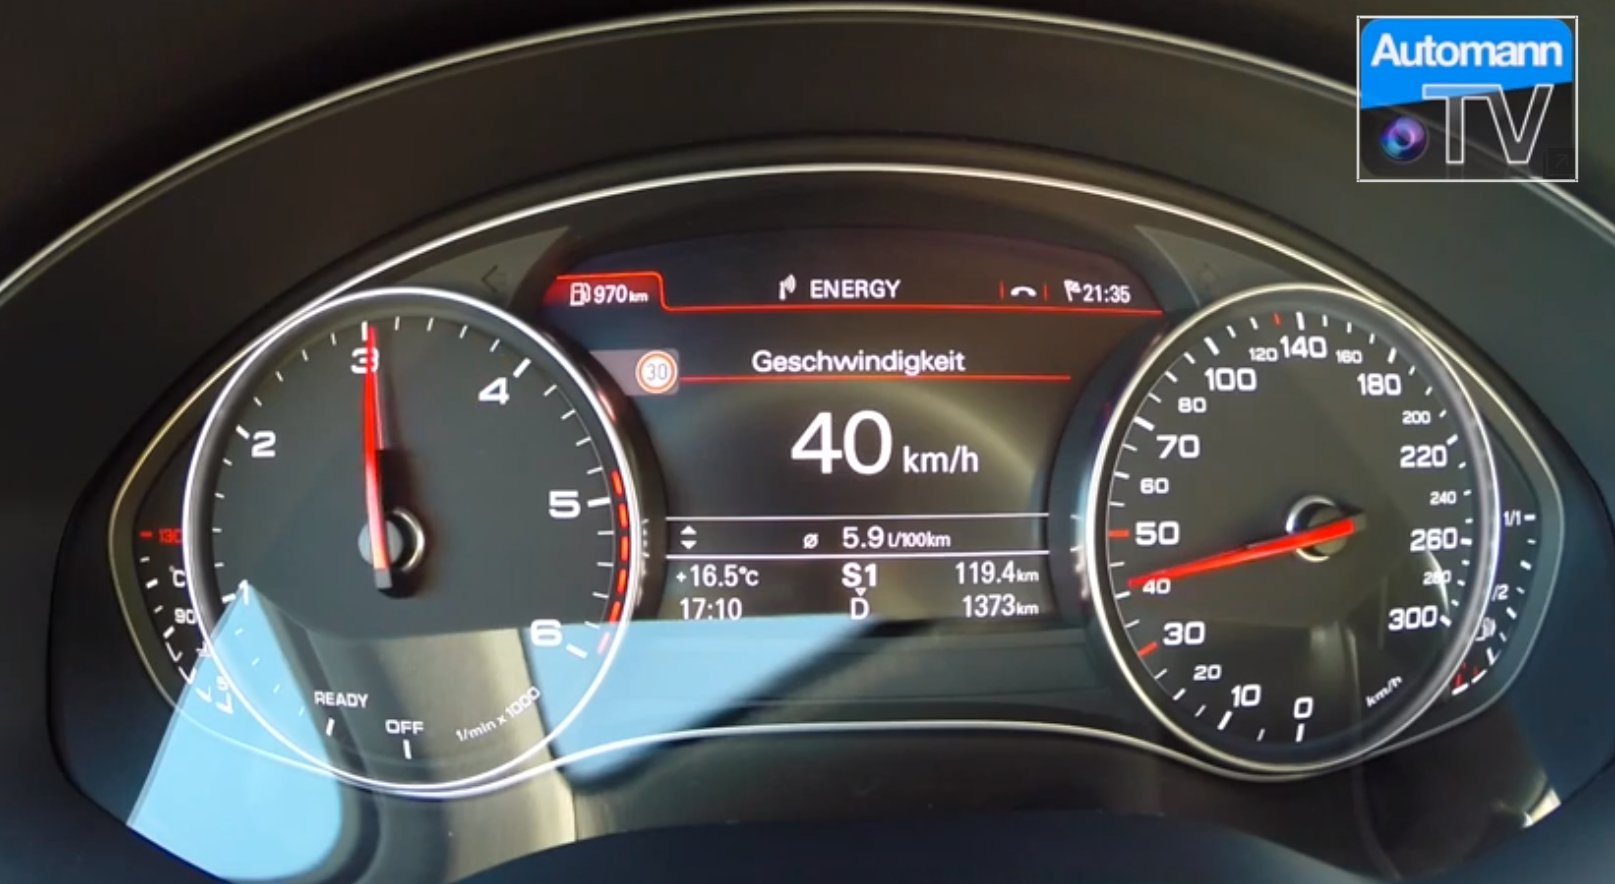 Audi A4 2.0 >> 2015 Audi A6 2.0 TDI ultra Acceleration and Top Speed Test - autoevolution